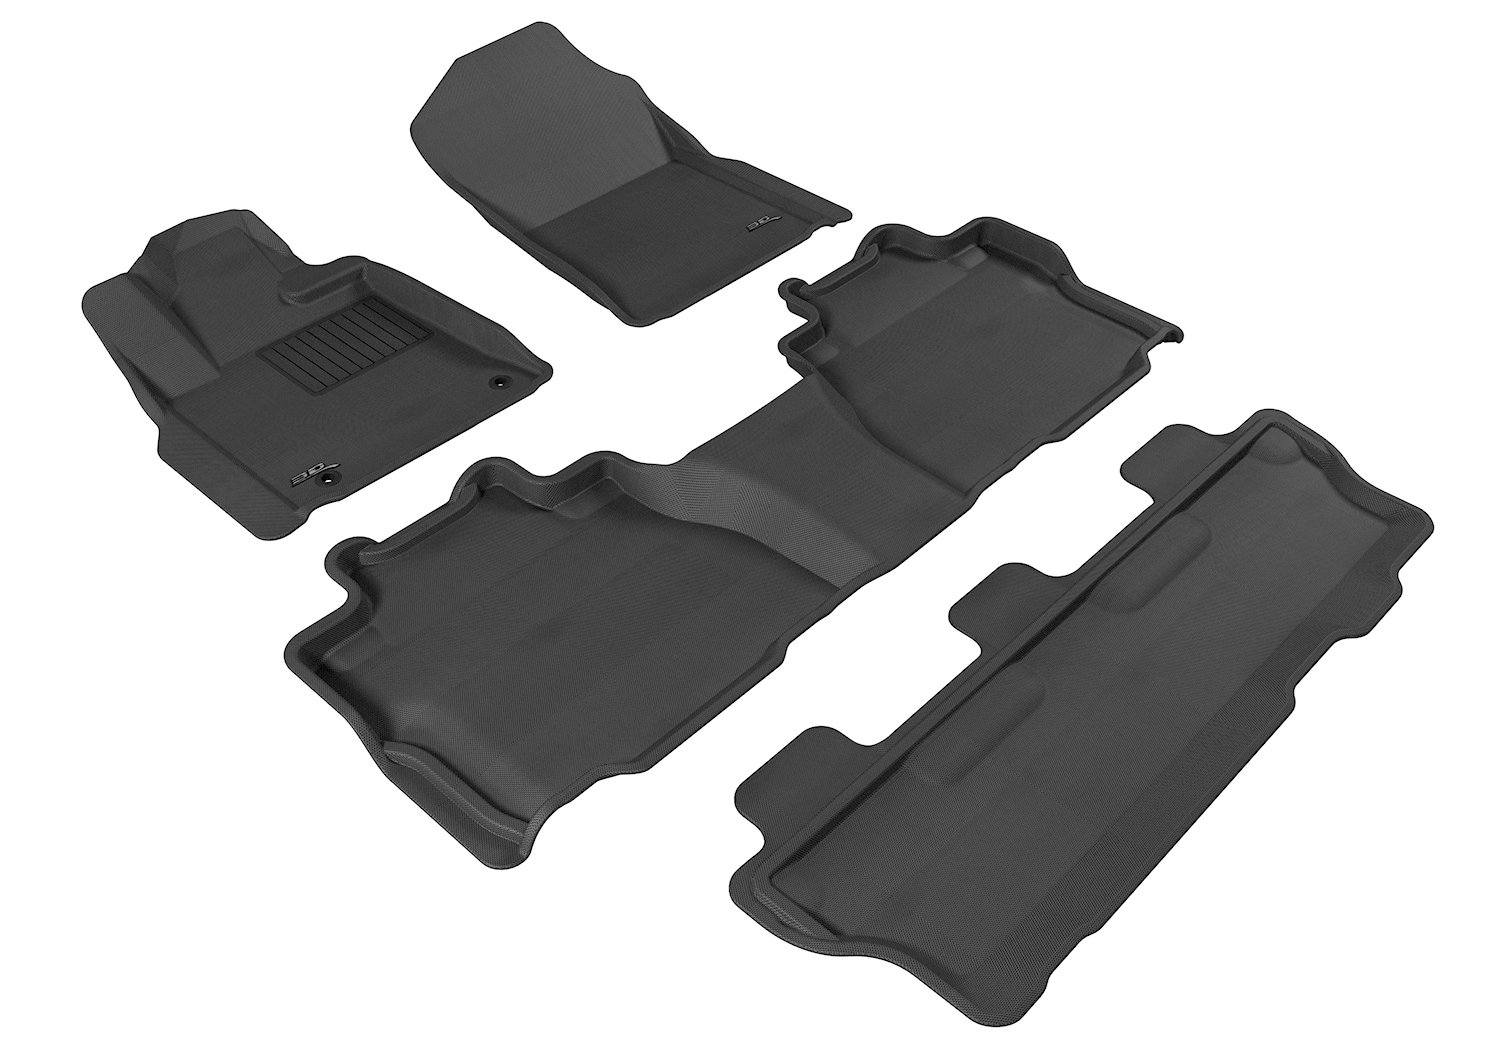 3D MAXpider Complete Set Custom Fit All-Weather Floor Mat for Select Toyota Sequoia Models - Kagu Rubber (Black)